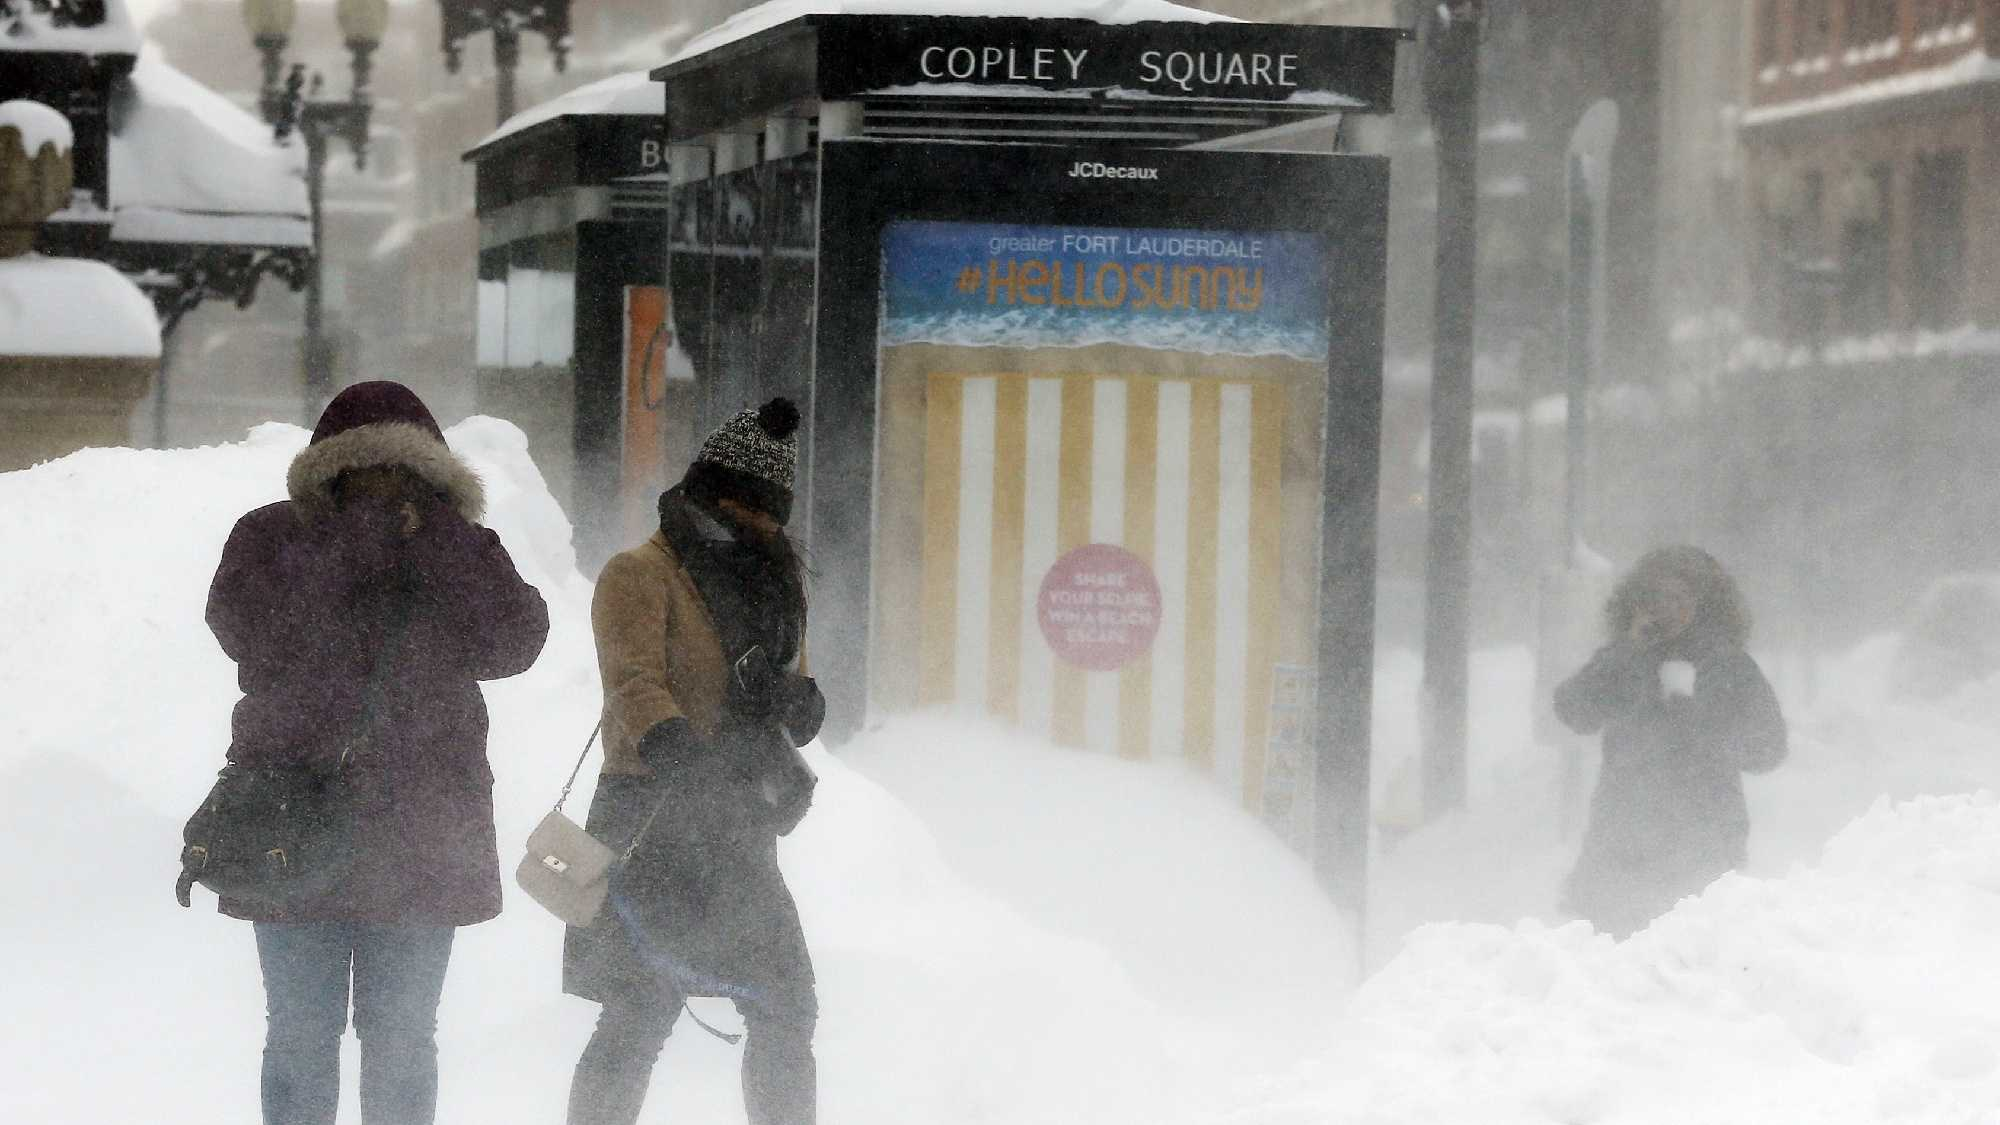 Pedestrians brace against blowing snow in Copley Square in Boston, Sunday, Feb. 15, 2015. A storm brought a new round of wind-whipped snow to New England on Sunday, threatening white-out conditions in coastal areas and forcing people to contend with a fourth winter onslaught in less than a month.